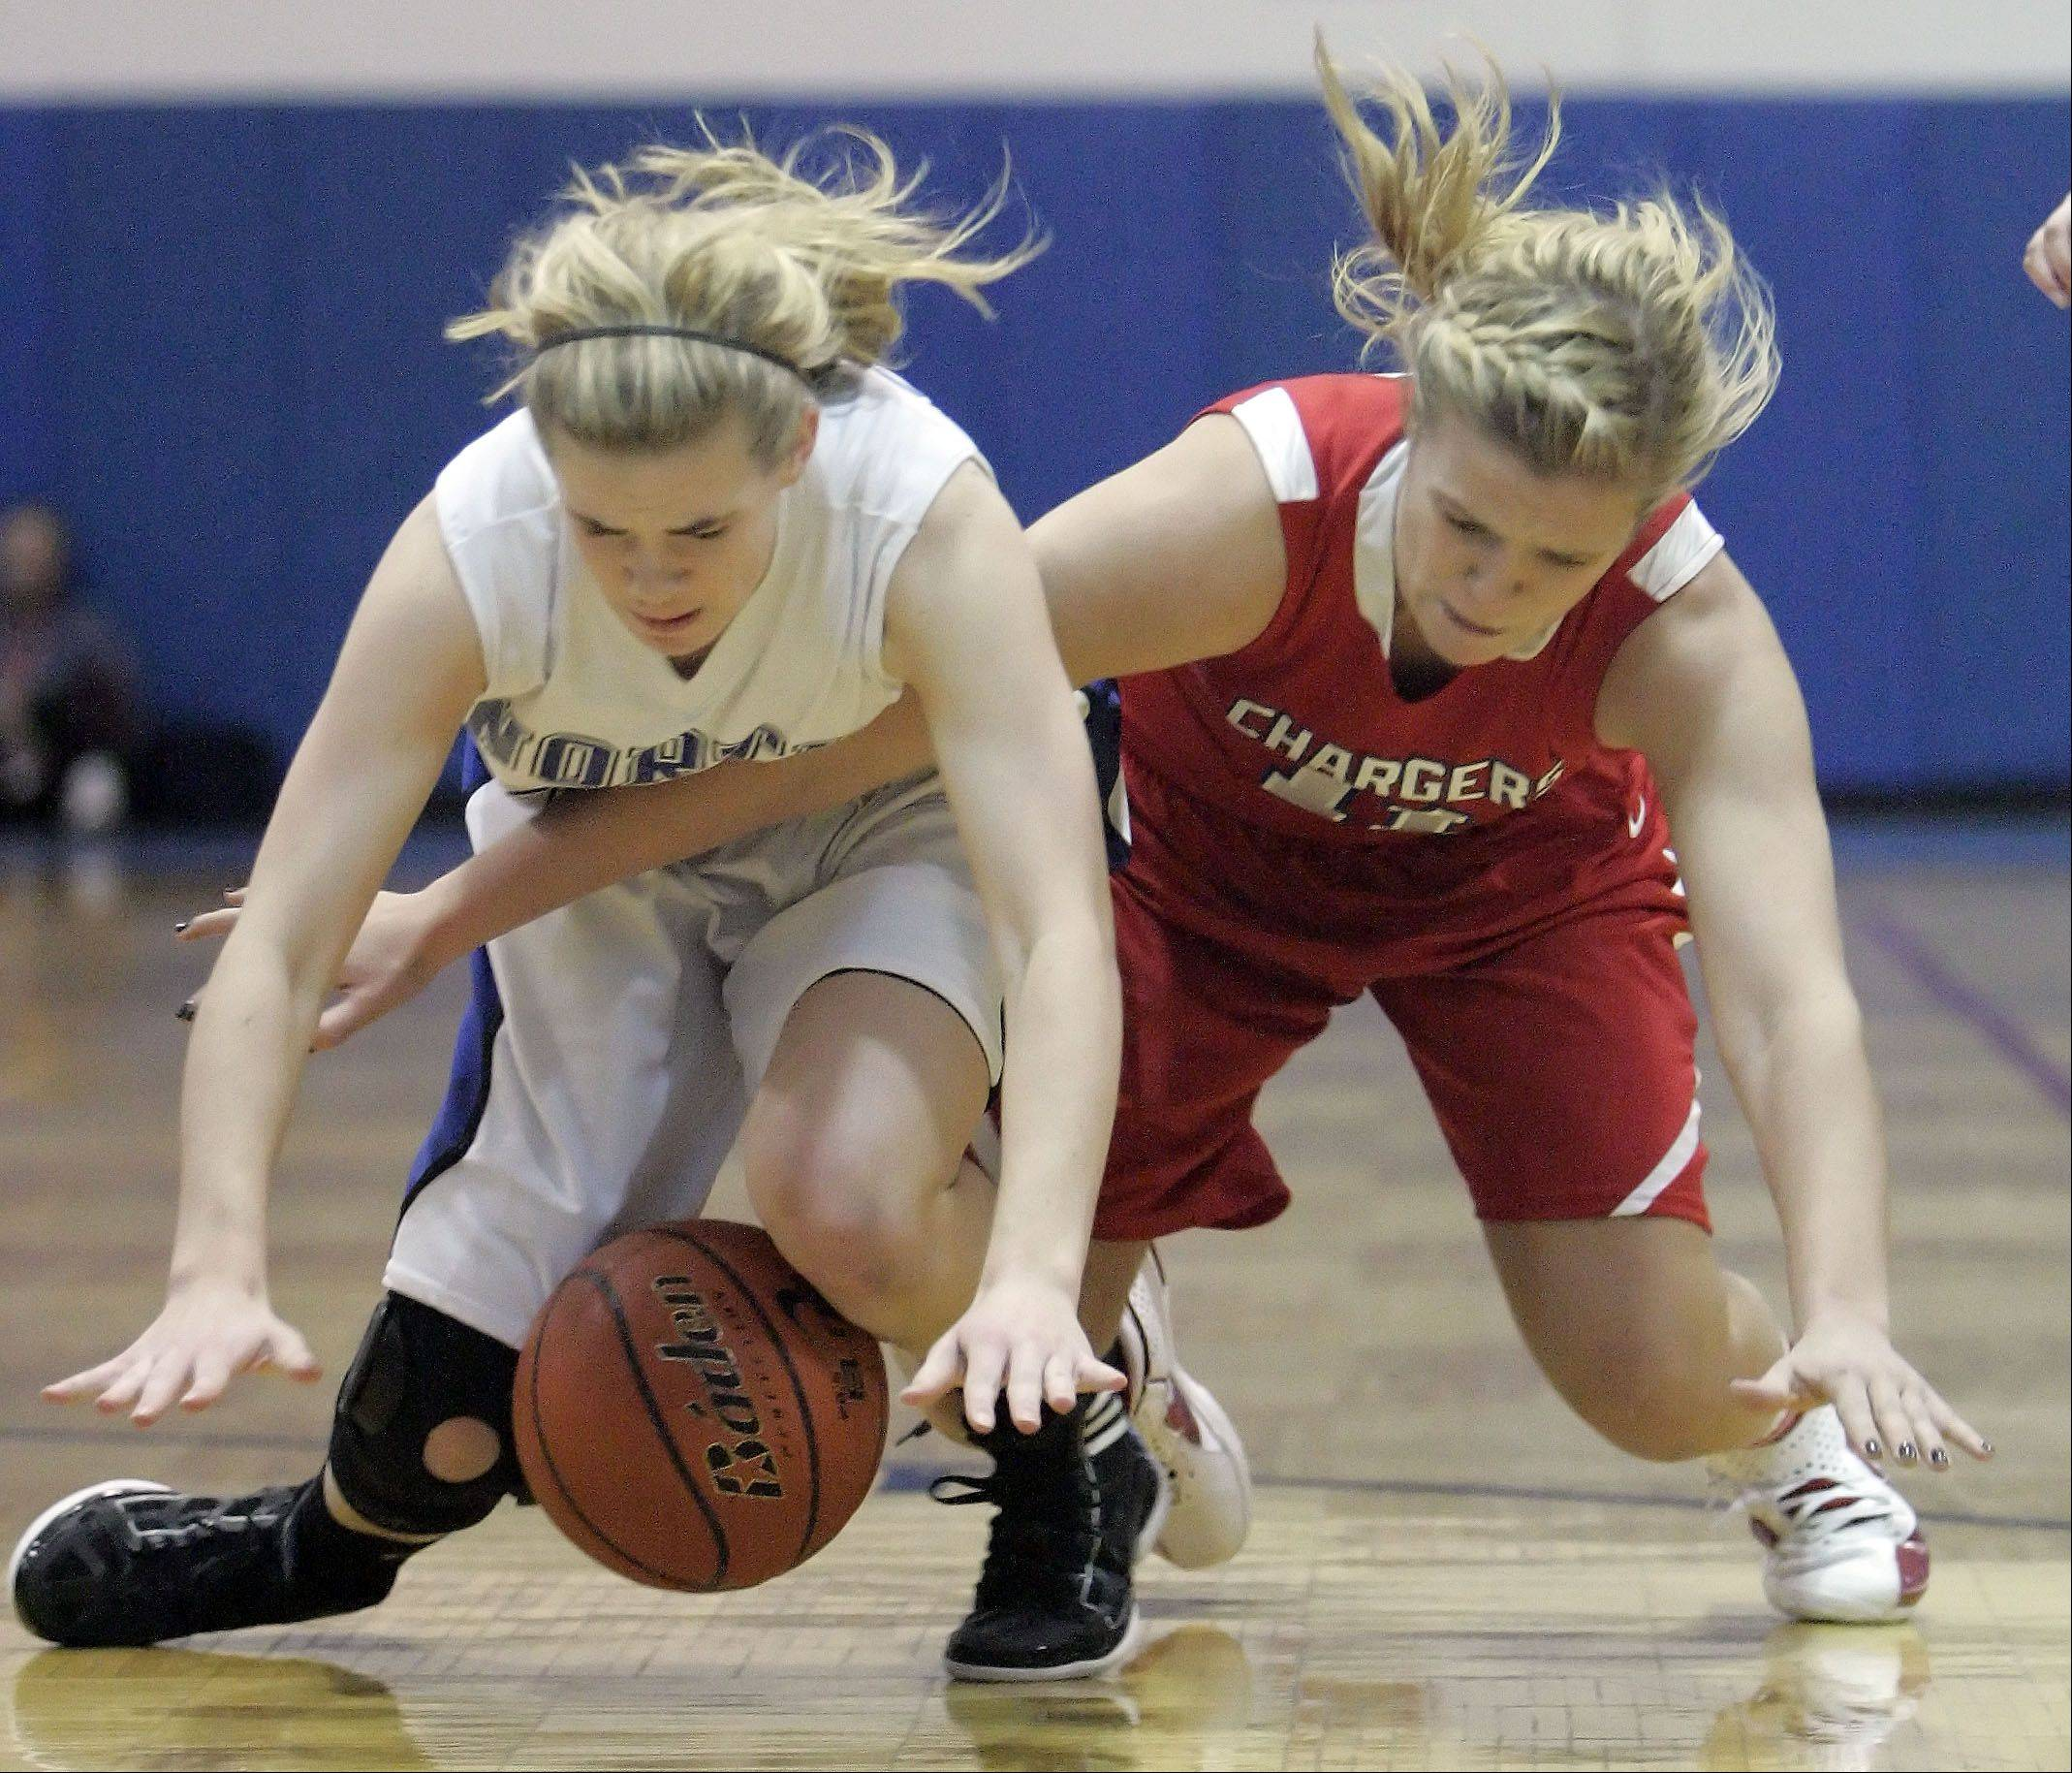 Dundee-Crown's Ali Sanders, 11, wrestles with St. Charles North's Lauren Durocher, 24, for the ball at the Dundee-Crown High School 29th Annual Charger Classic Christmas Tournament Thursday in Carpentersville.